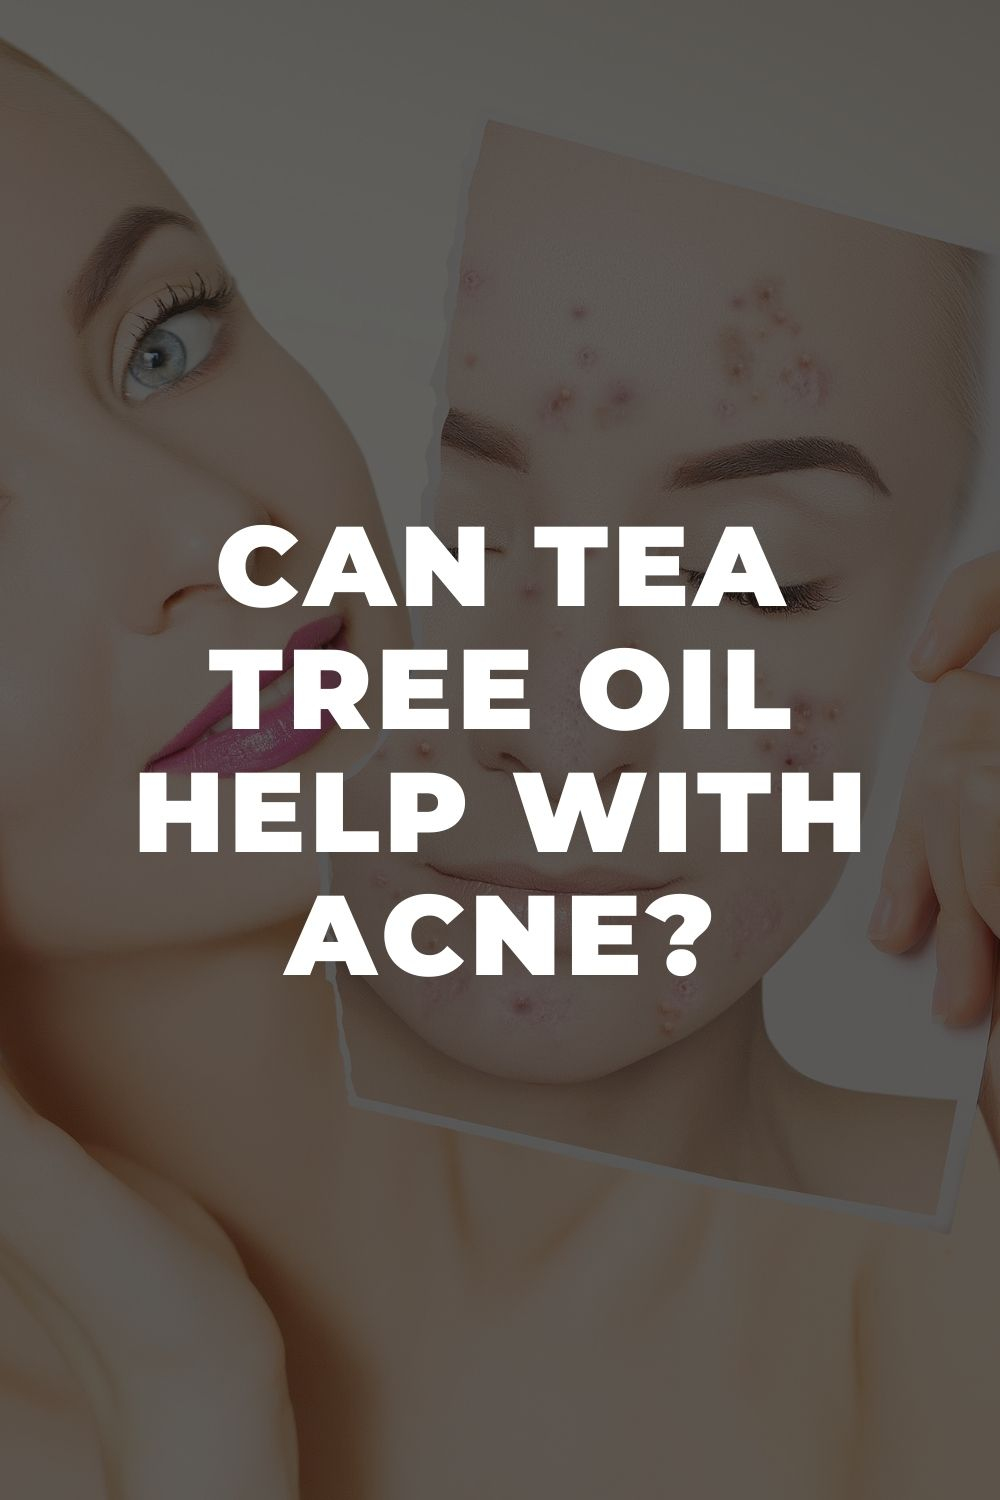 Can Tea Tree Oil Help with Acne?